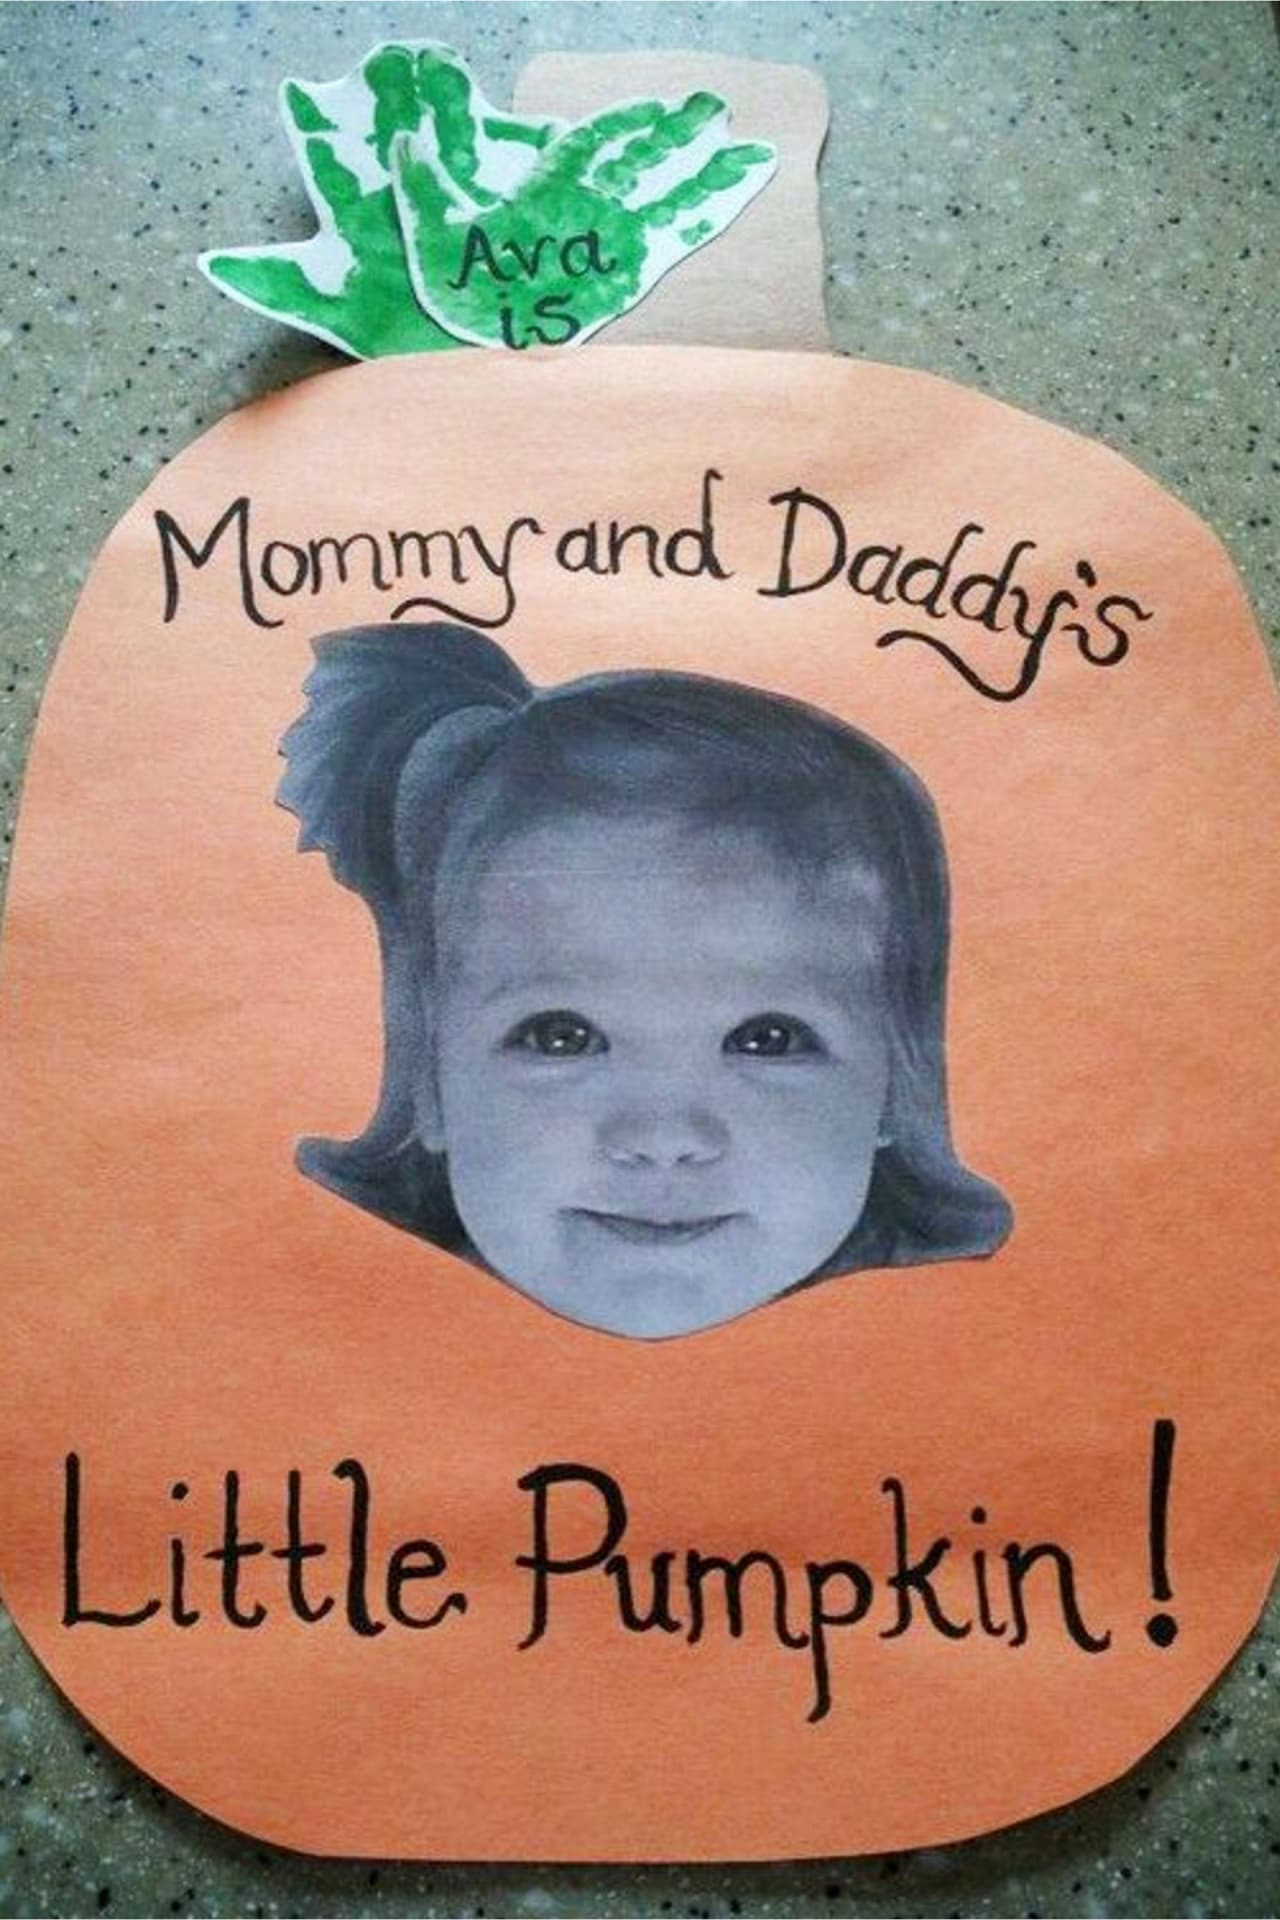 Fall pumpkin crafts for toddlers to make in preschool, daycare, Pre-K, Sunday school or at home.  Fun and easy fall crafts and art projects for kids